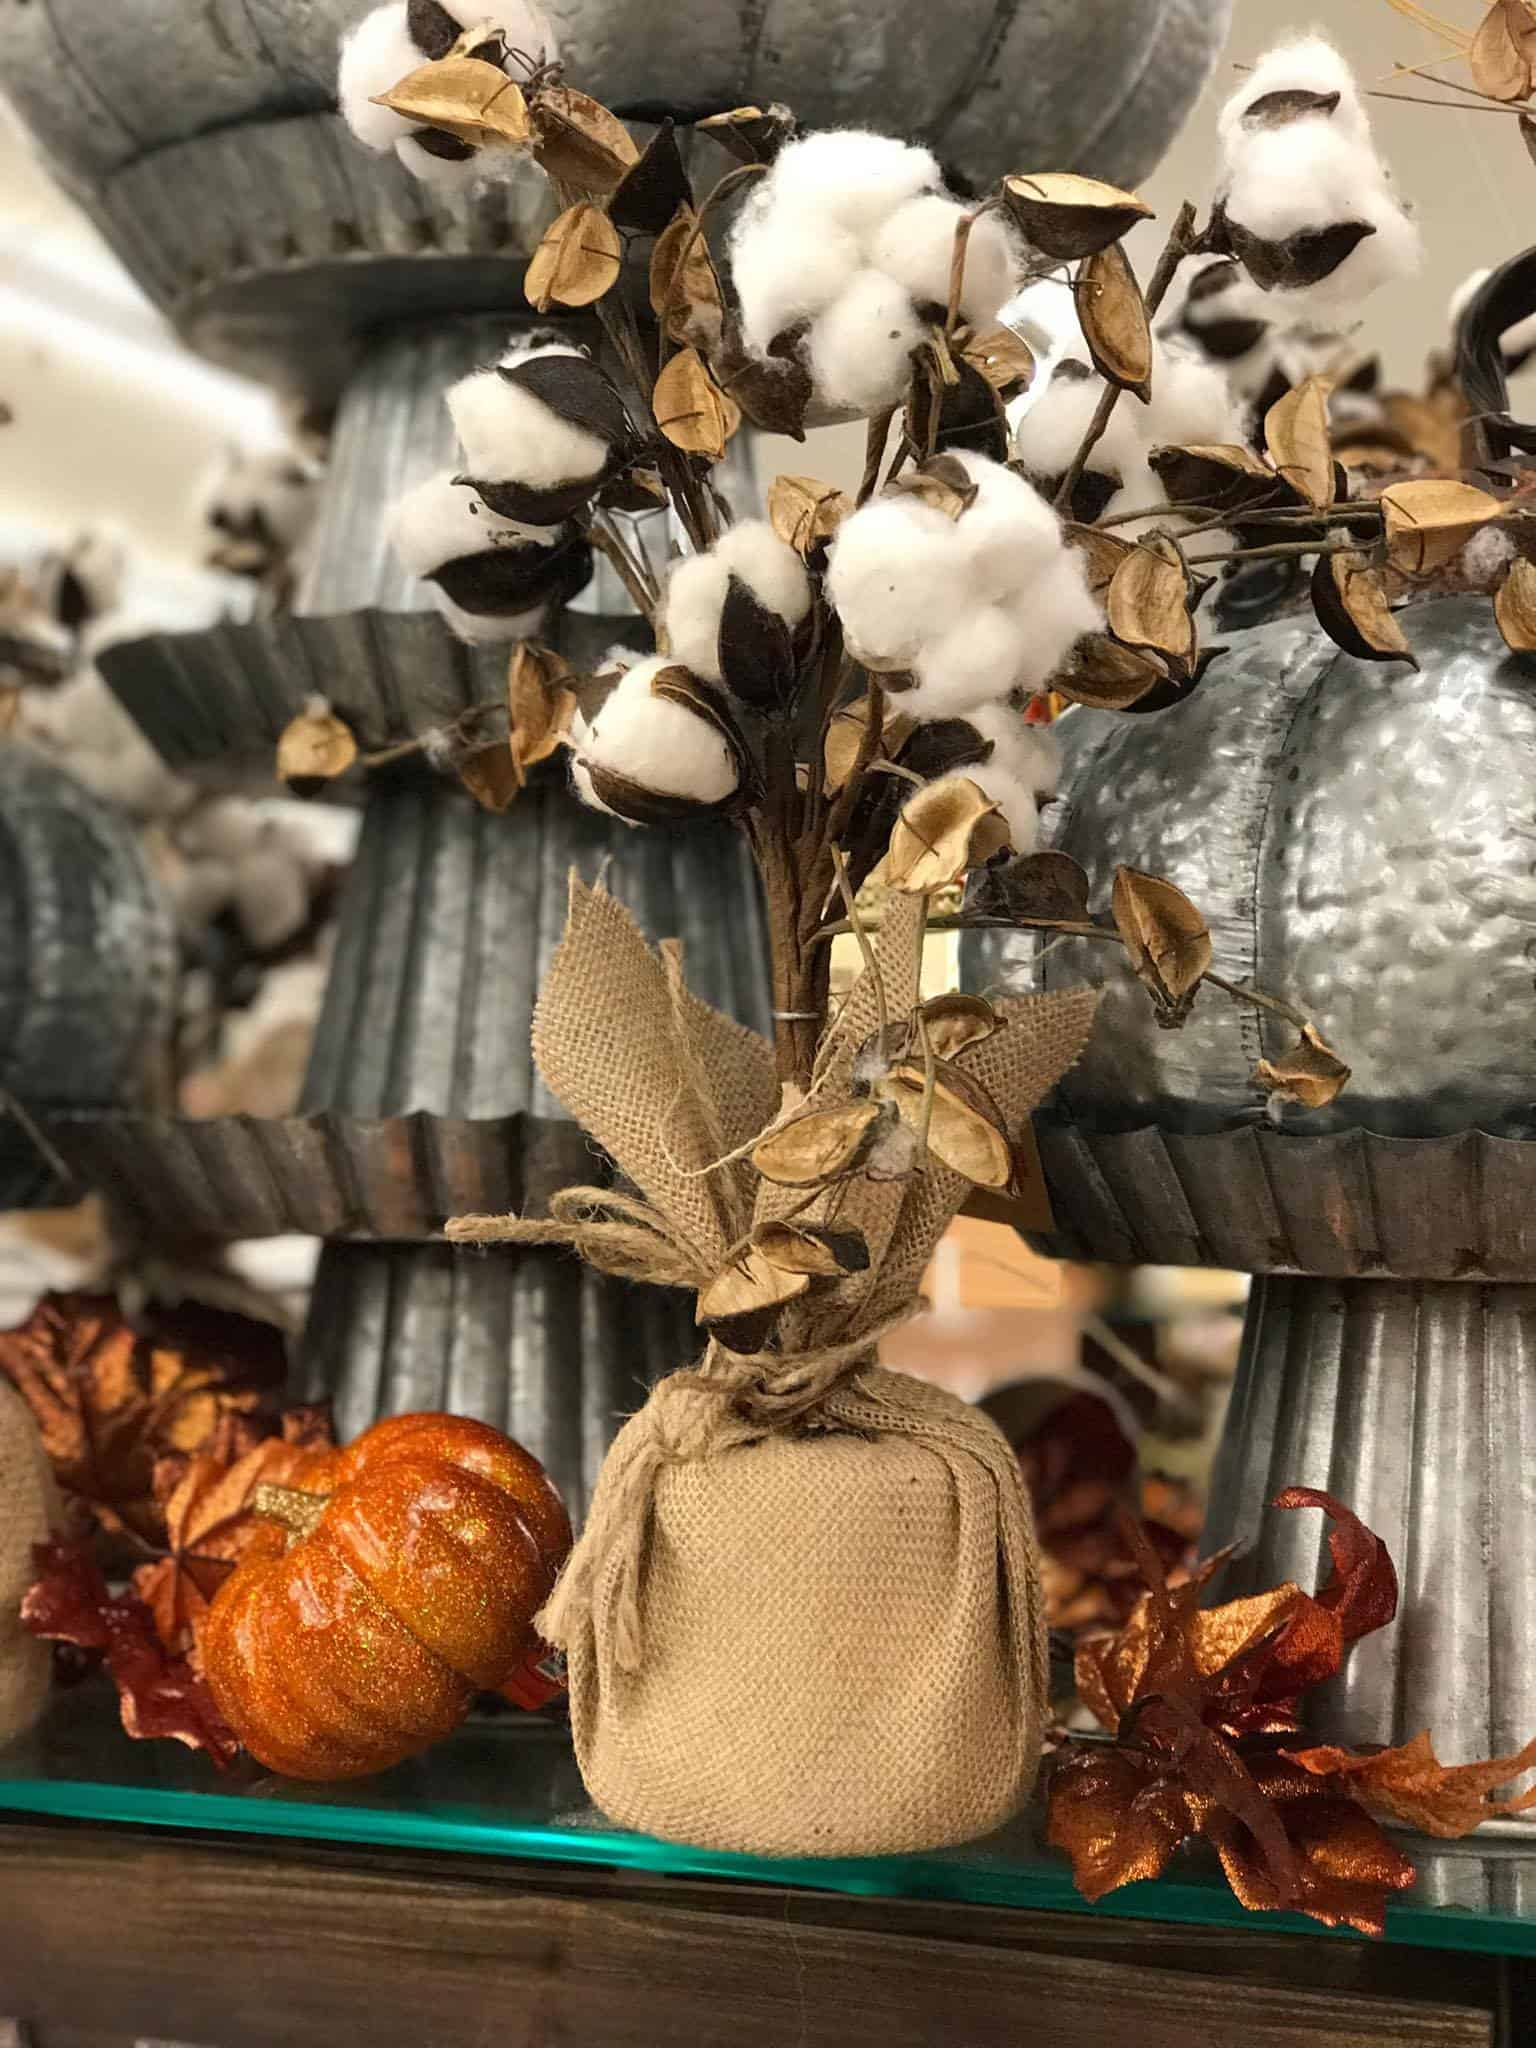 Hobby Lobby Halloween Decorations 2019.Fall Home Decor At Hobby Lobby Stylish Cravings